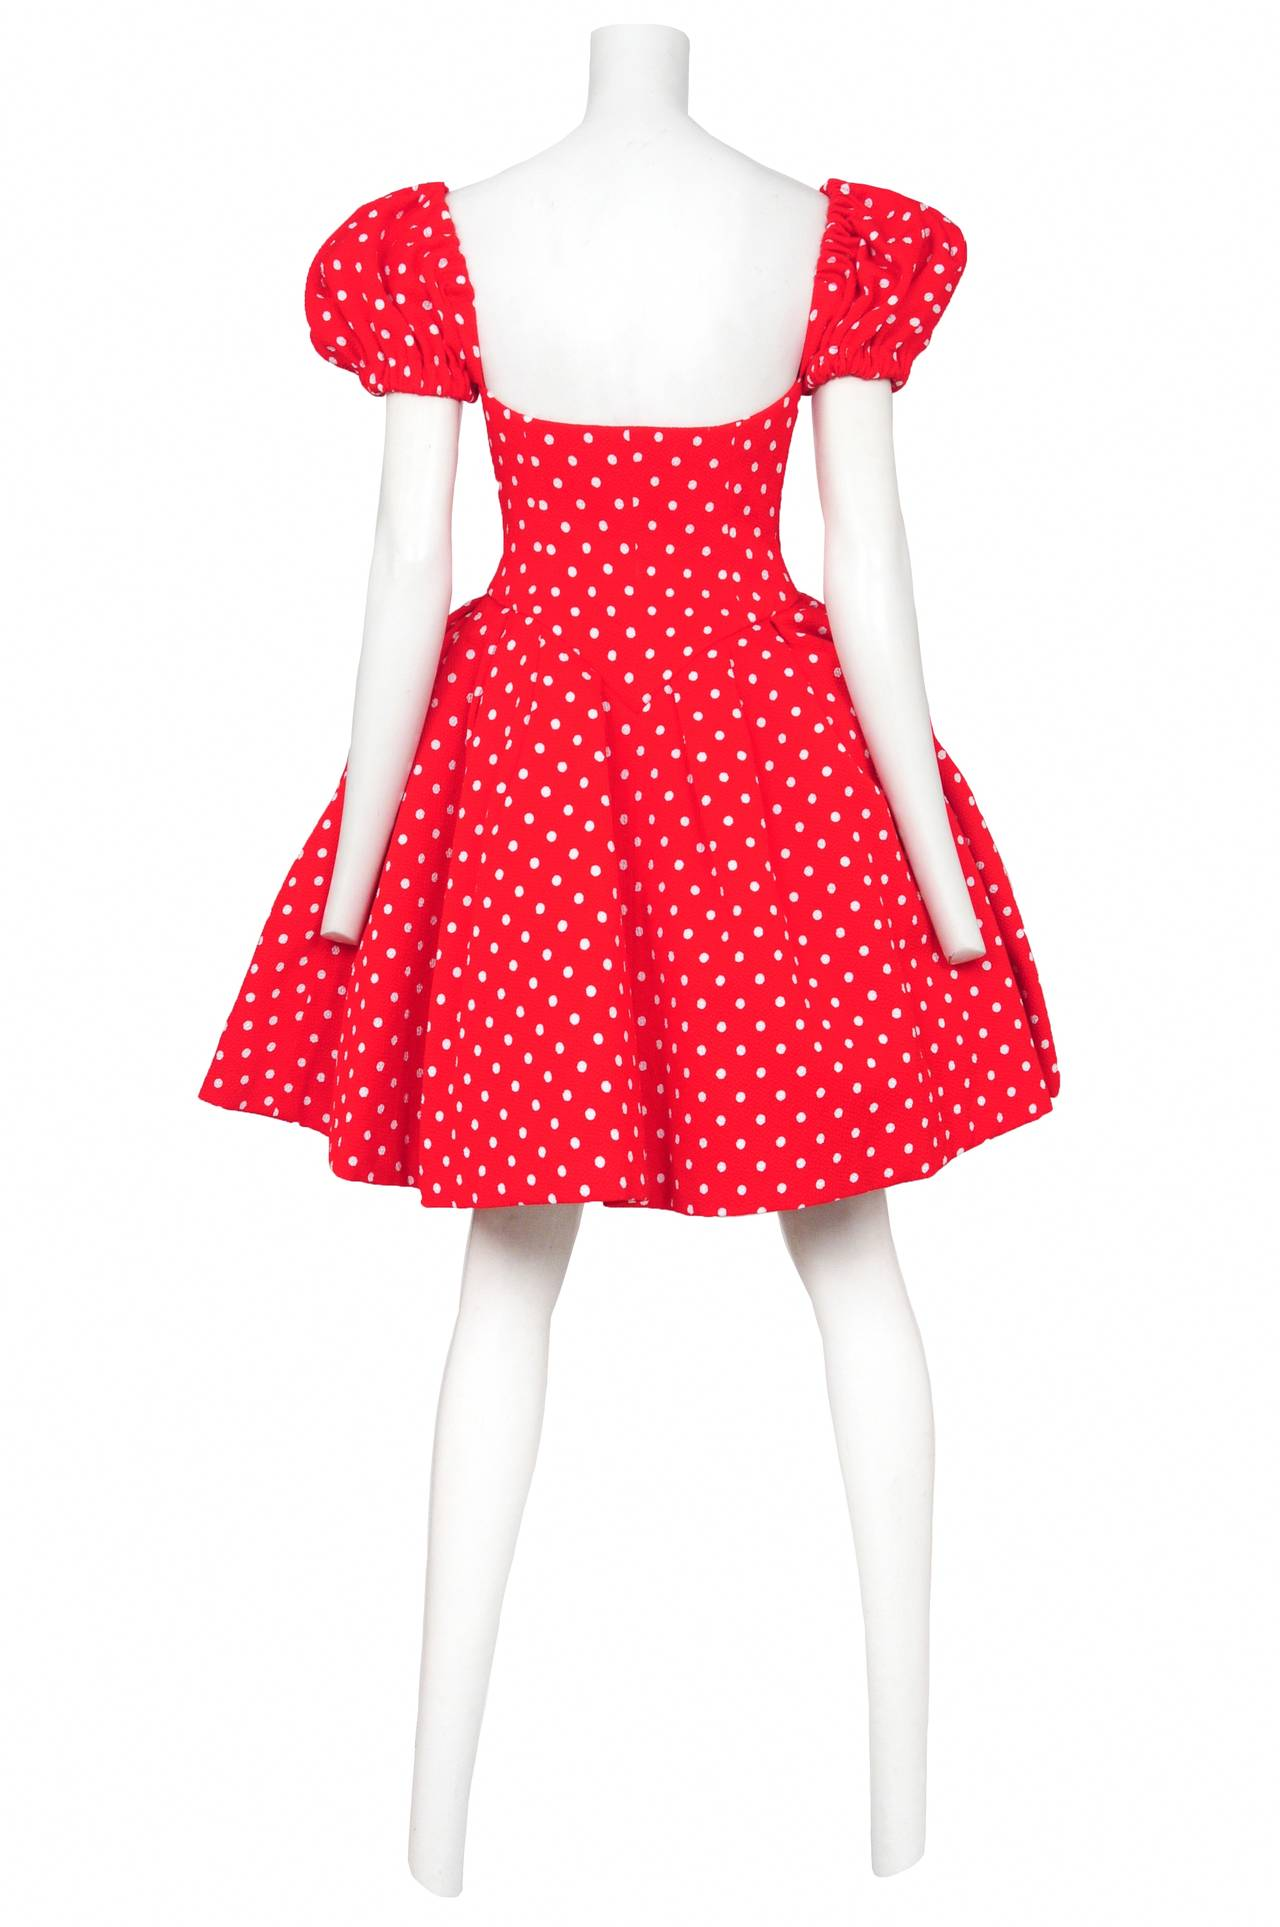 Christian Lacroix Polka Dot Cocktail Dress 2